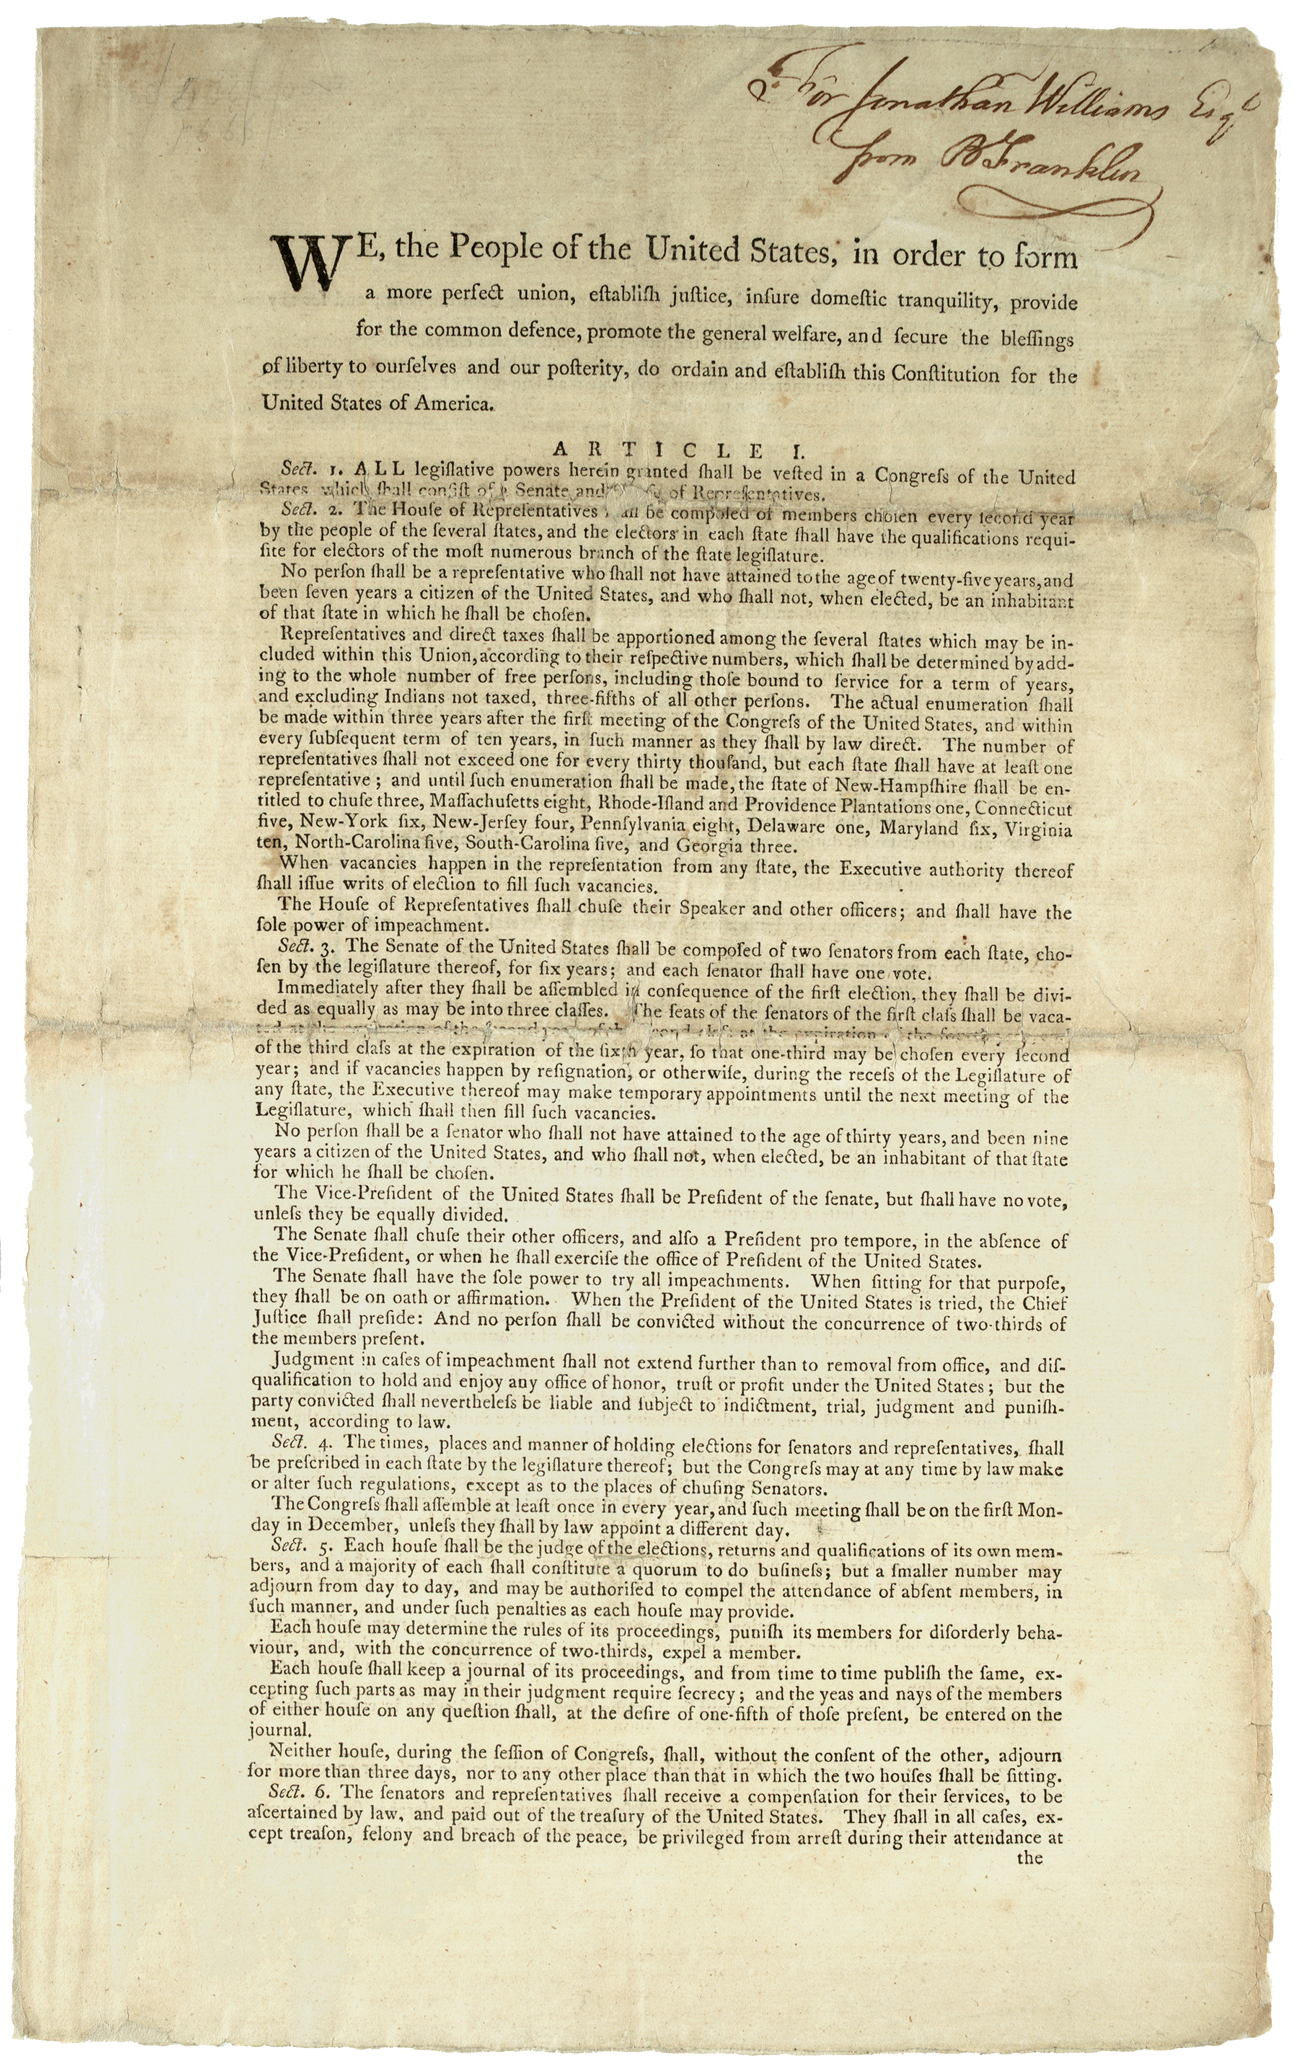 Constitution. Printed Dunlap & Claypoole edition inscribed to Jonathan Williams,